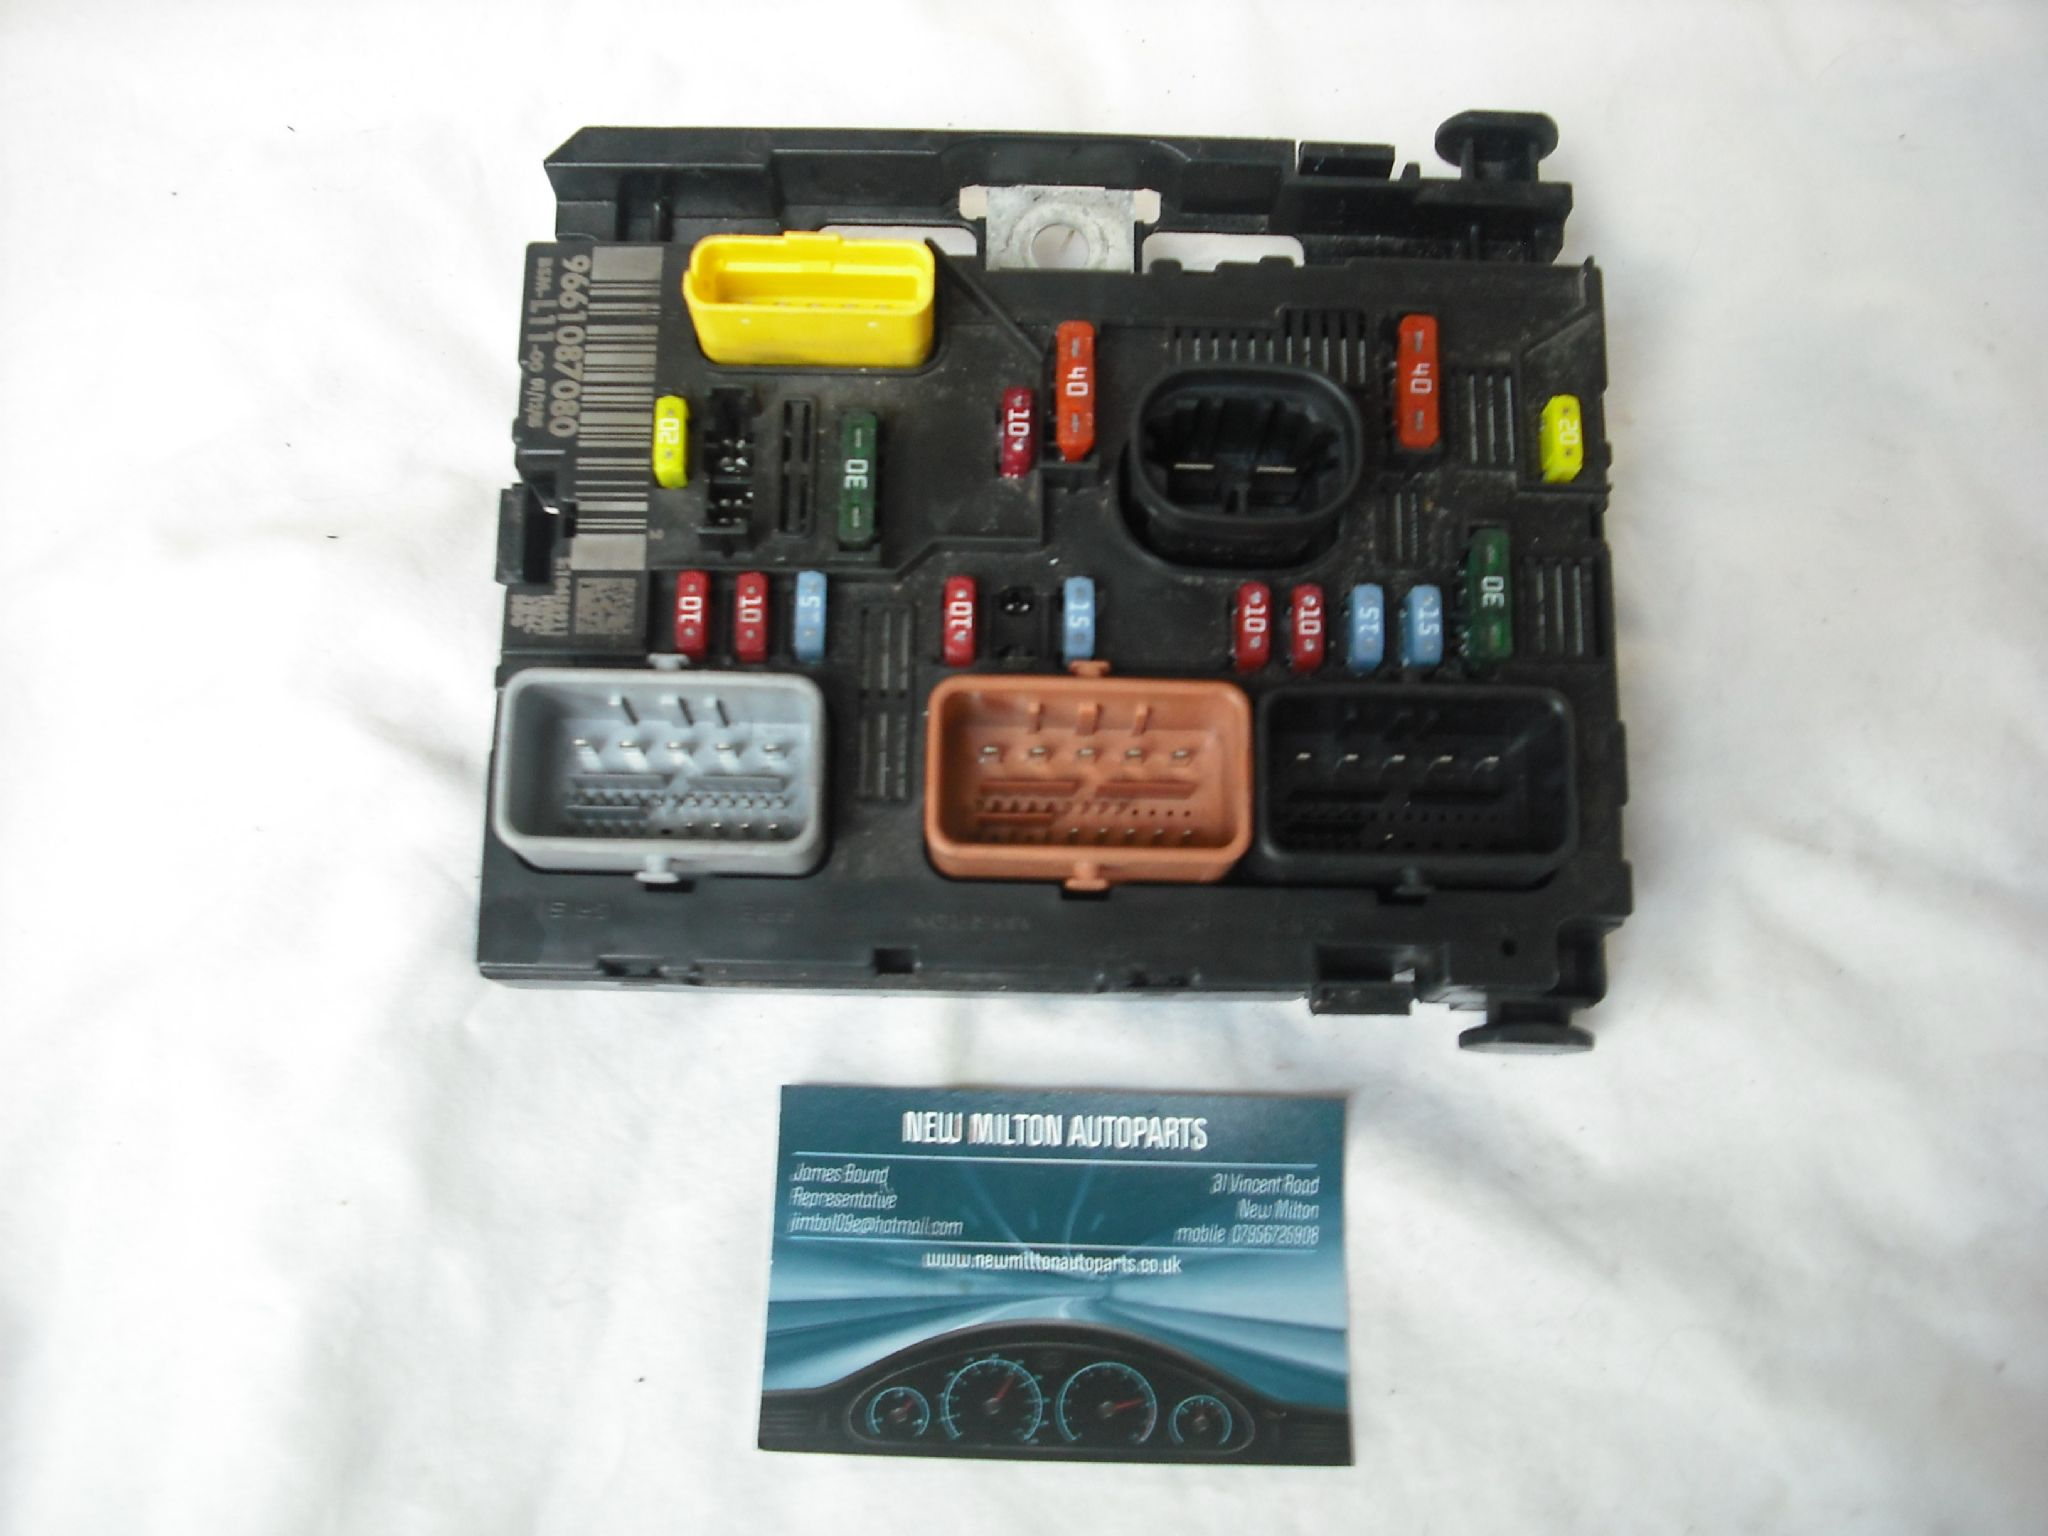 a genuine peugeot 307 1.6 hdi engine bay fuse box control module bsm l11 00 9661087080 6702 p a genuine peugeot 307 1 6 hdi engine bay fuse box control module citroen c4 engine bay fuse box at mifinder.co